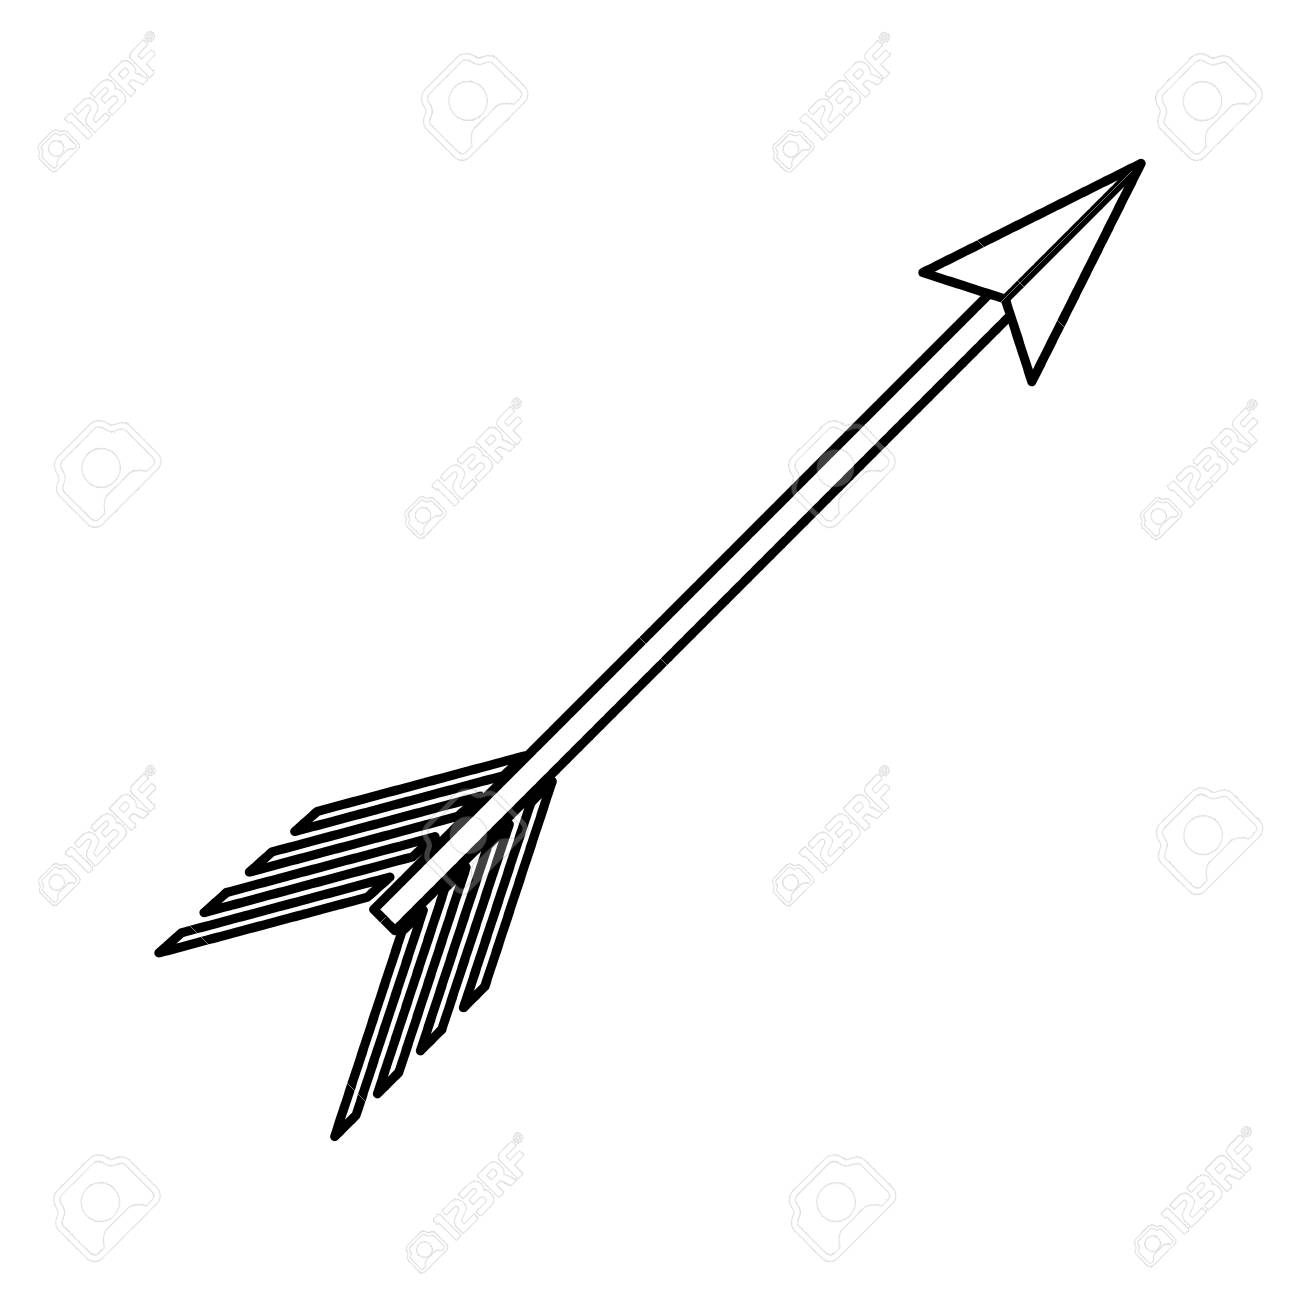 Arrow with feather.